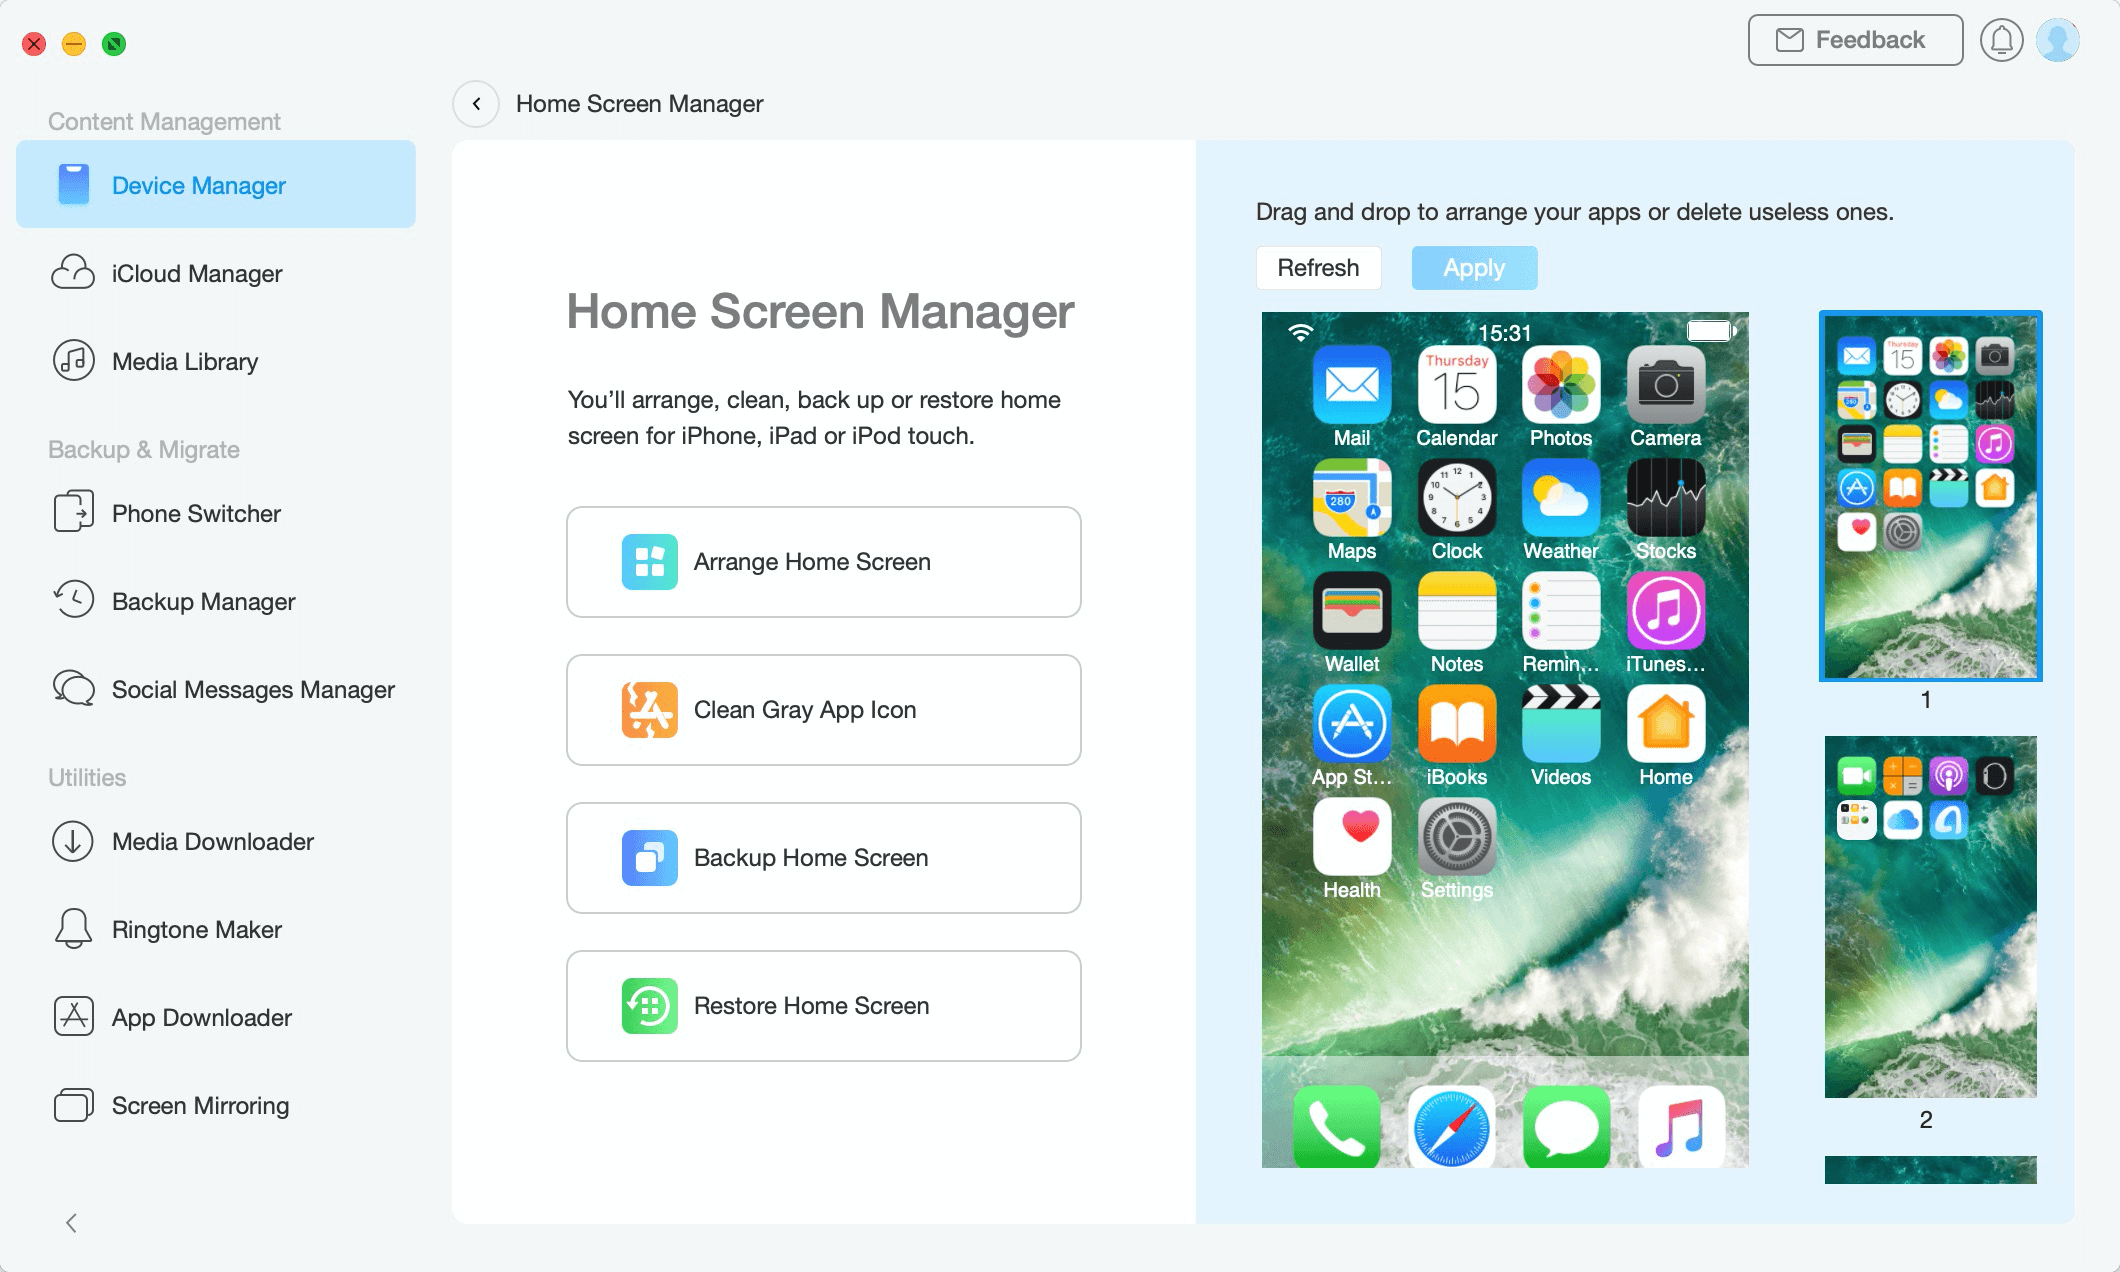 Accessing Home Screen Manager